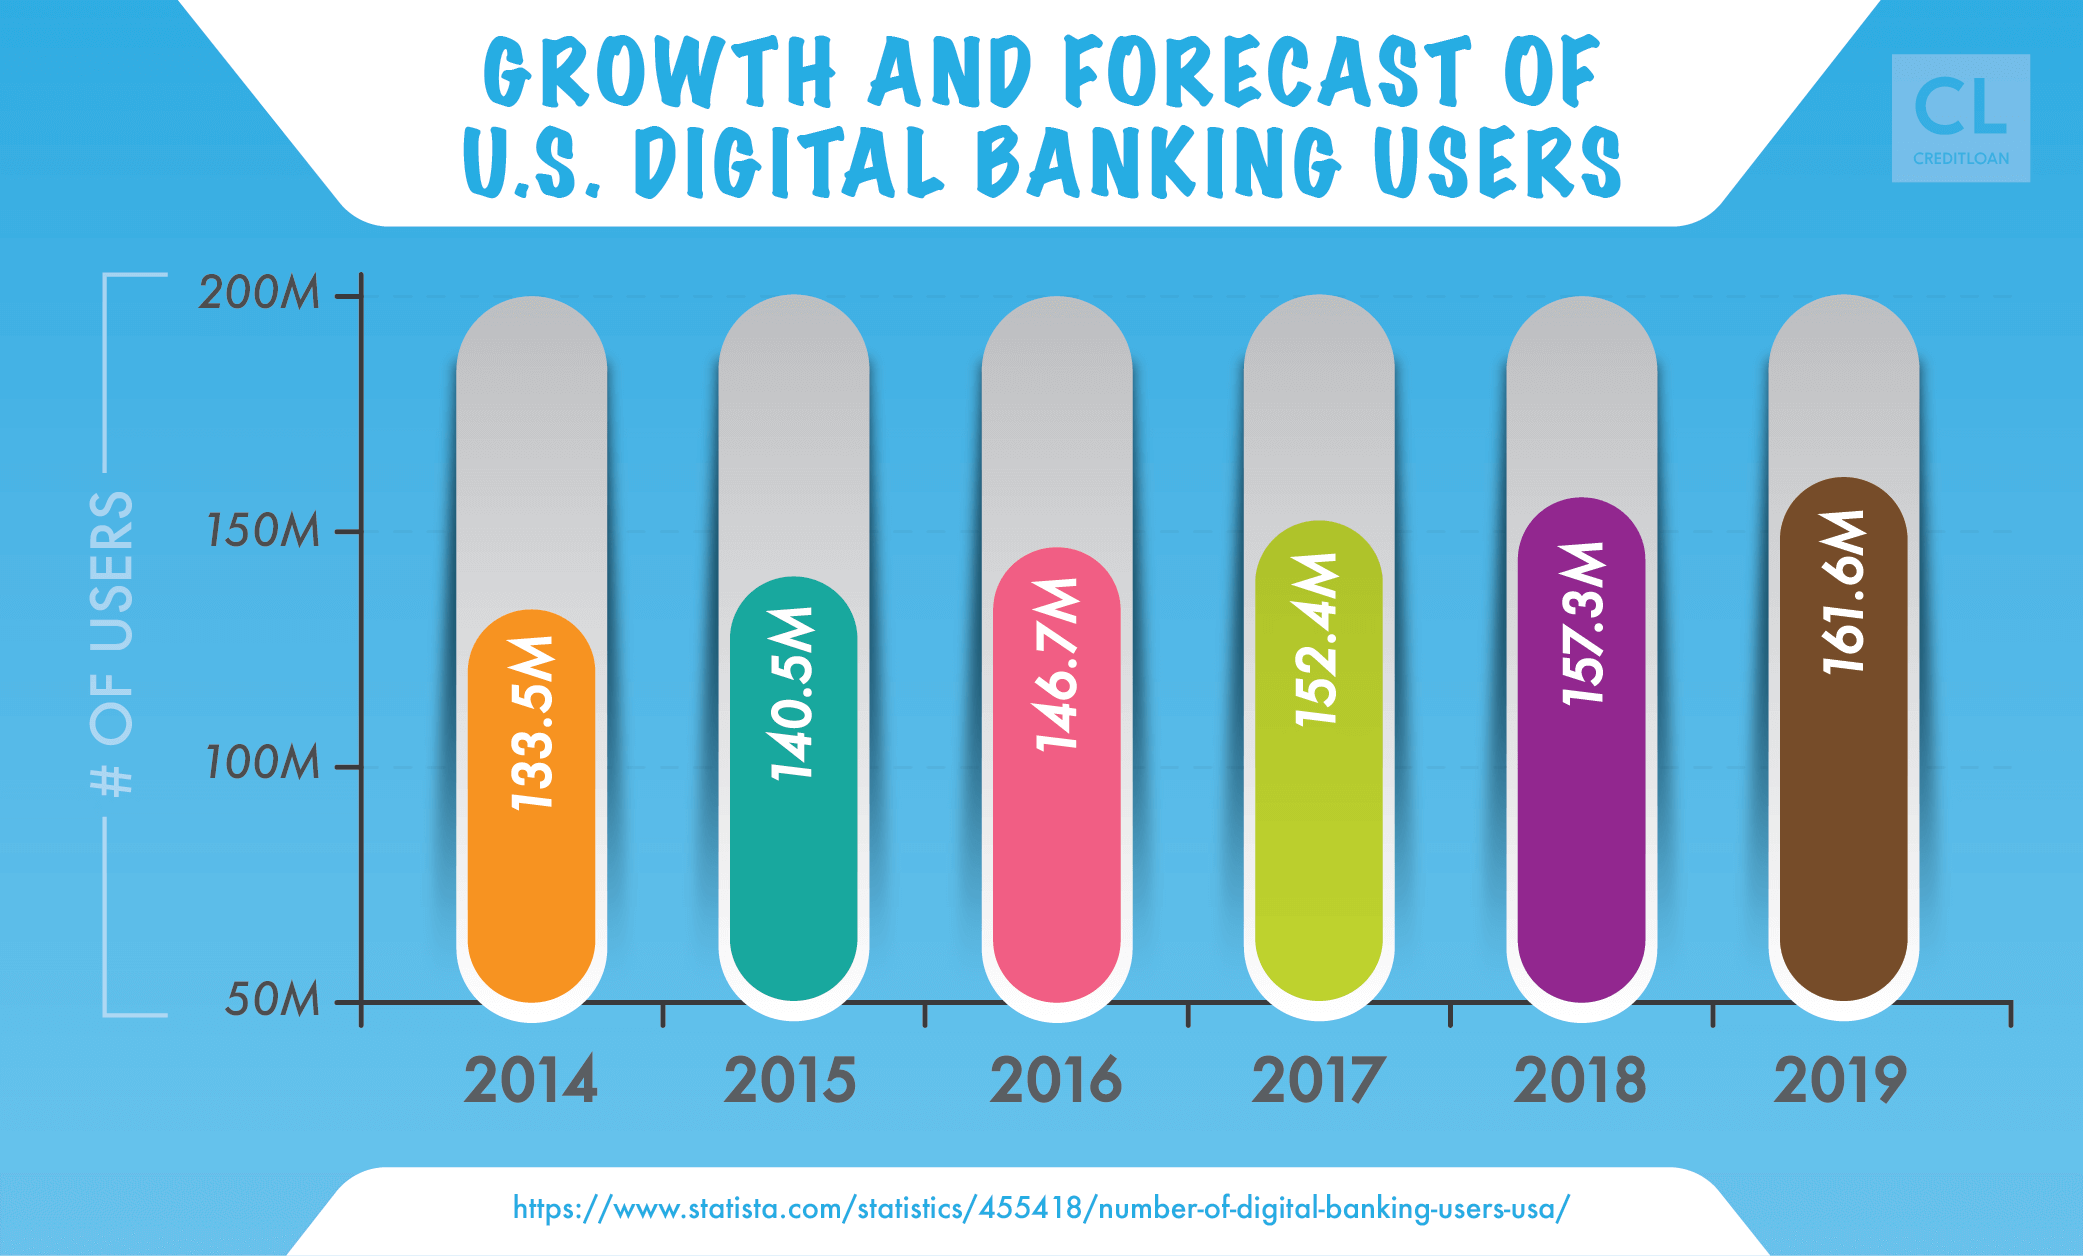 Growth & Forecast of U.S. Digital Banking Users